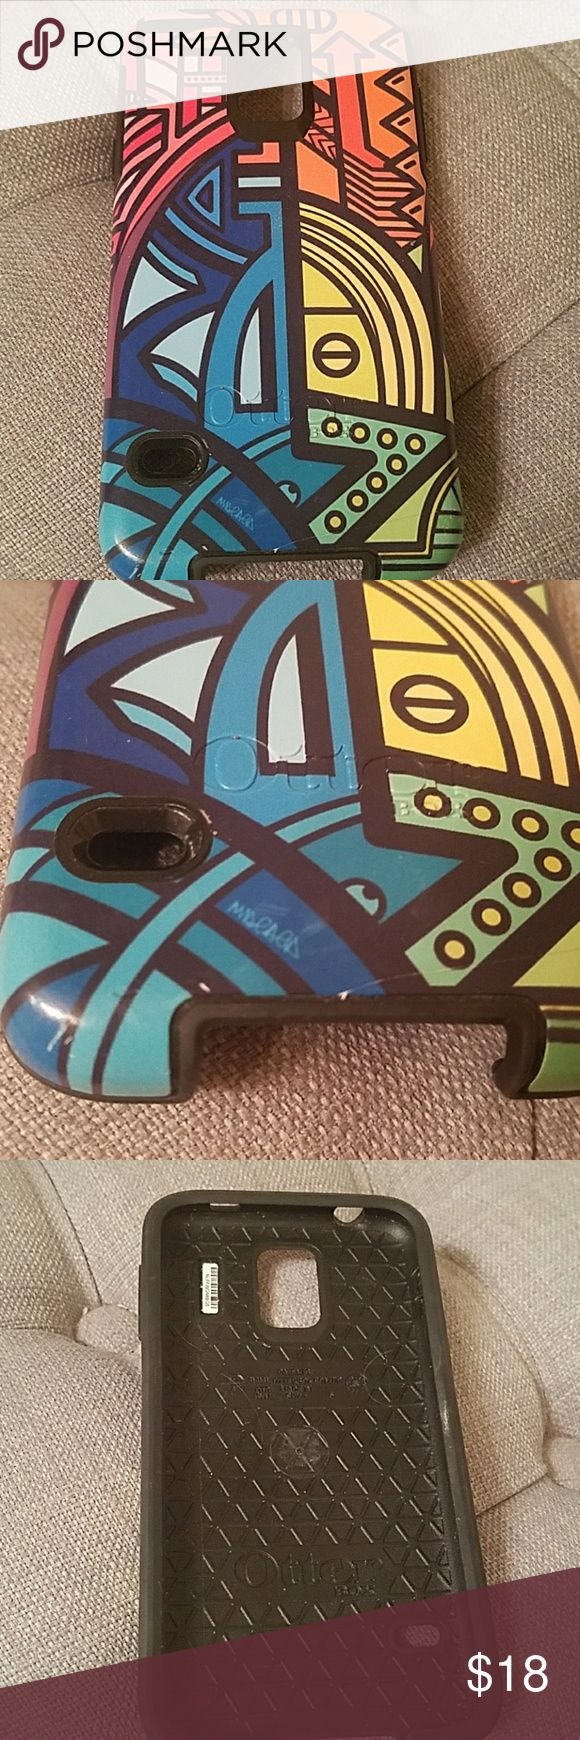 Otterbox slim case Samsung Galaxy S5 Used otterbox case in wild Brazilian print designed by fashion editor Nina Garcia. A few tiny scratches see photos. Fits phone perfectly and very snug. I like this style as it's not as boxy and bulky like the other otterbox cases but still provides protection.   Cellphone not included. Otterbox Accessories Phone Cases